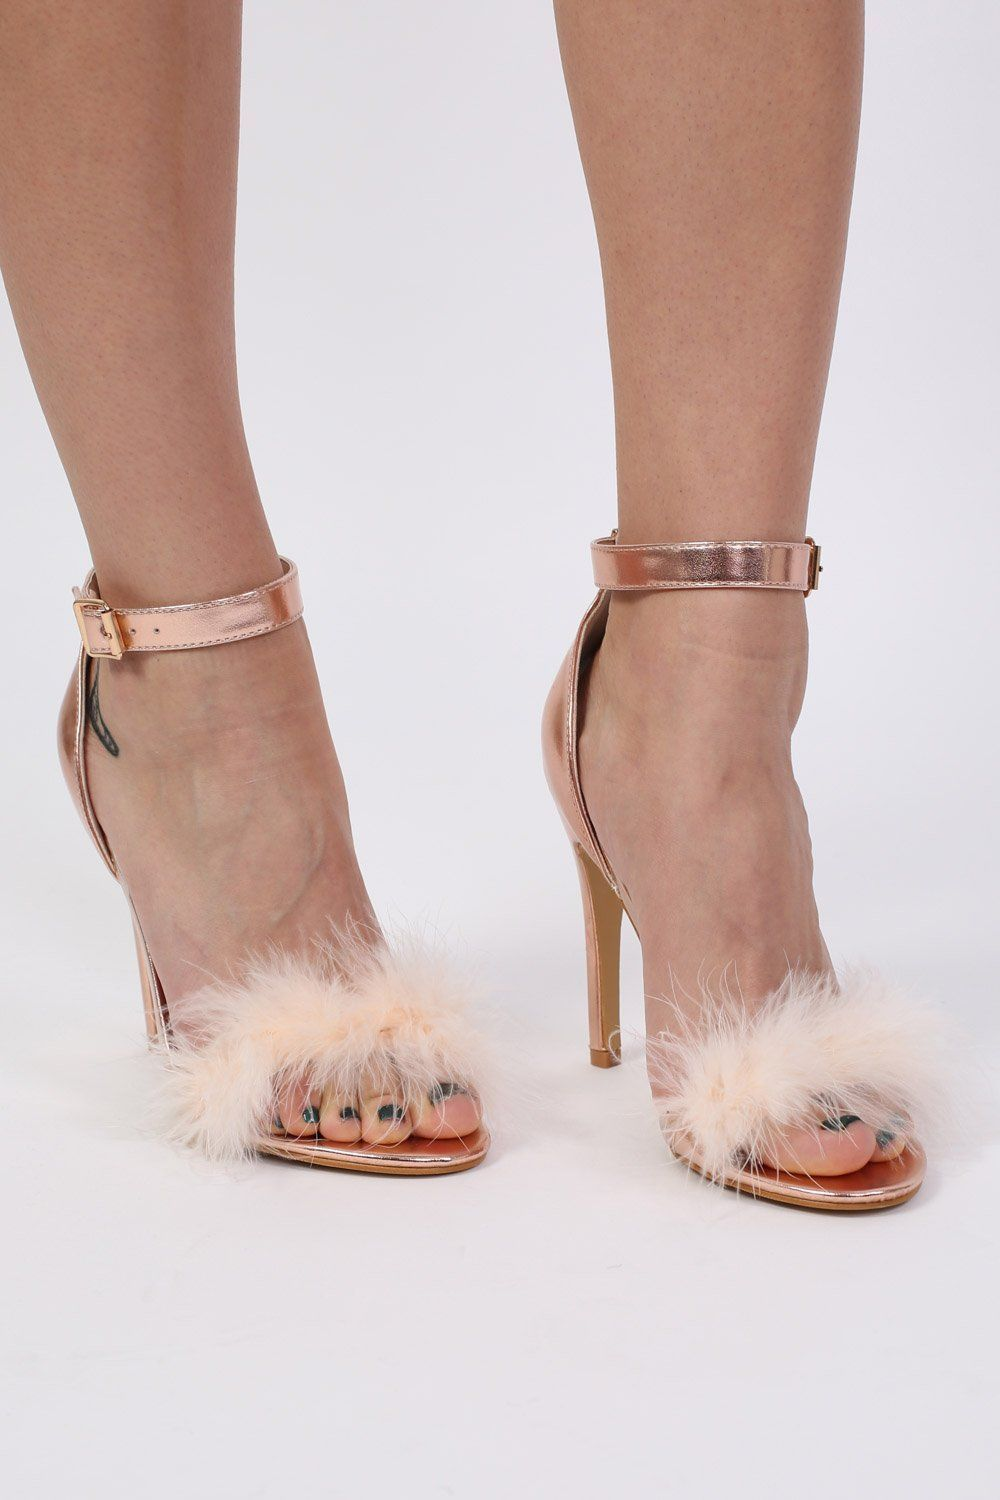 Metallic Faux Feather Strappy High Heel Sandals in Rose Gold 0